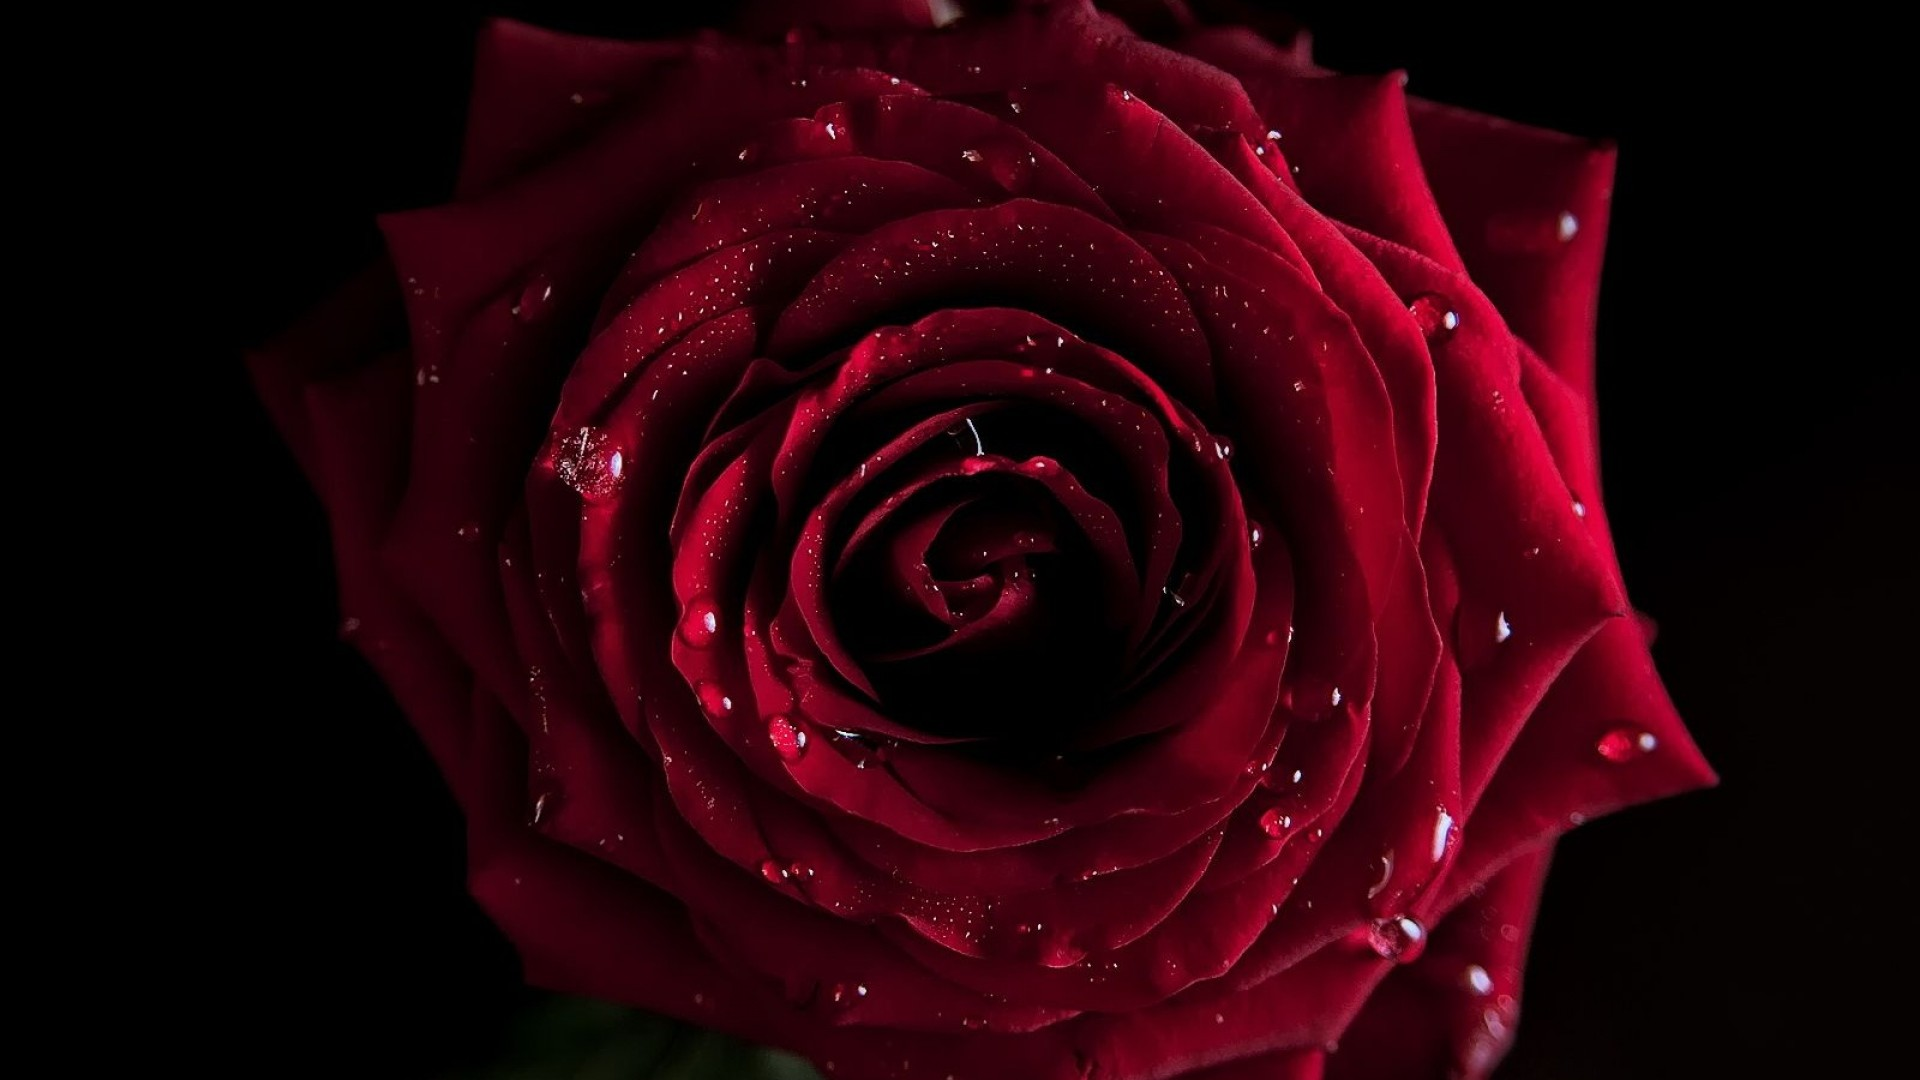 1920x1080 Red Roses Wallpapers HD A39 dark